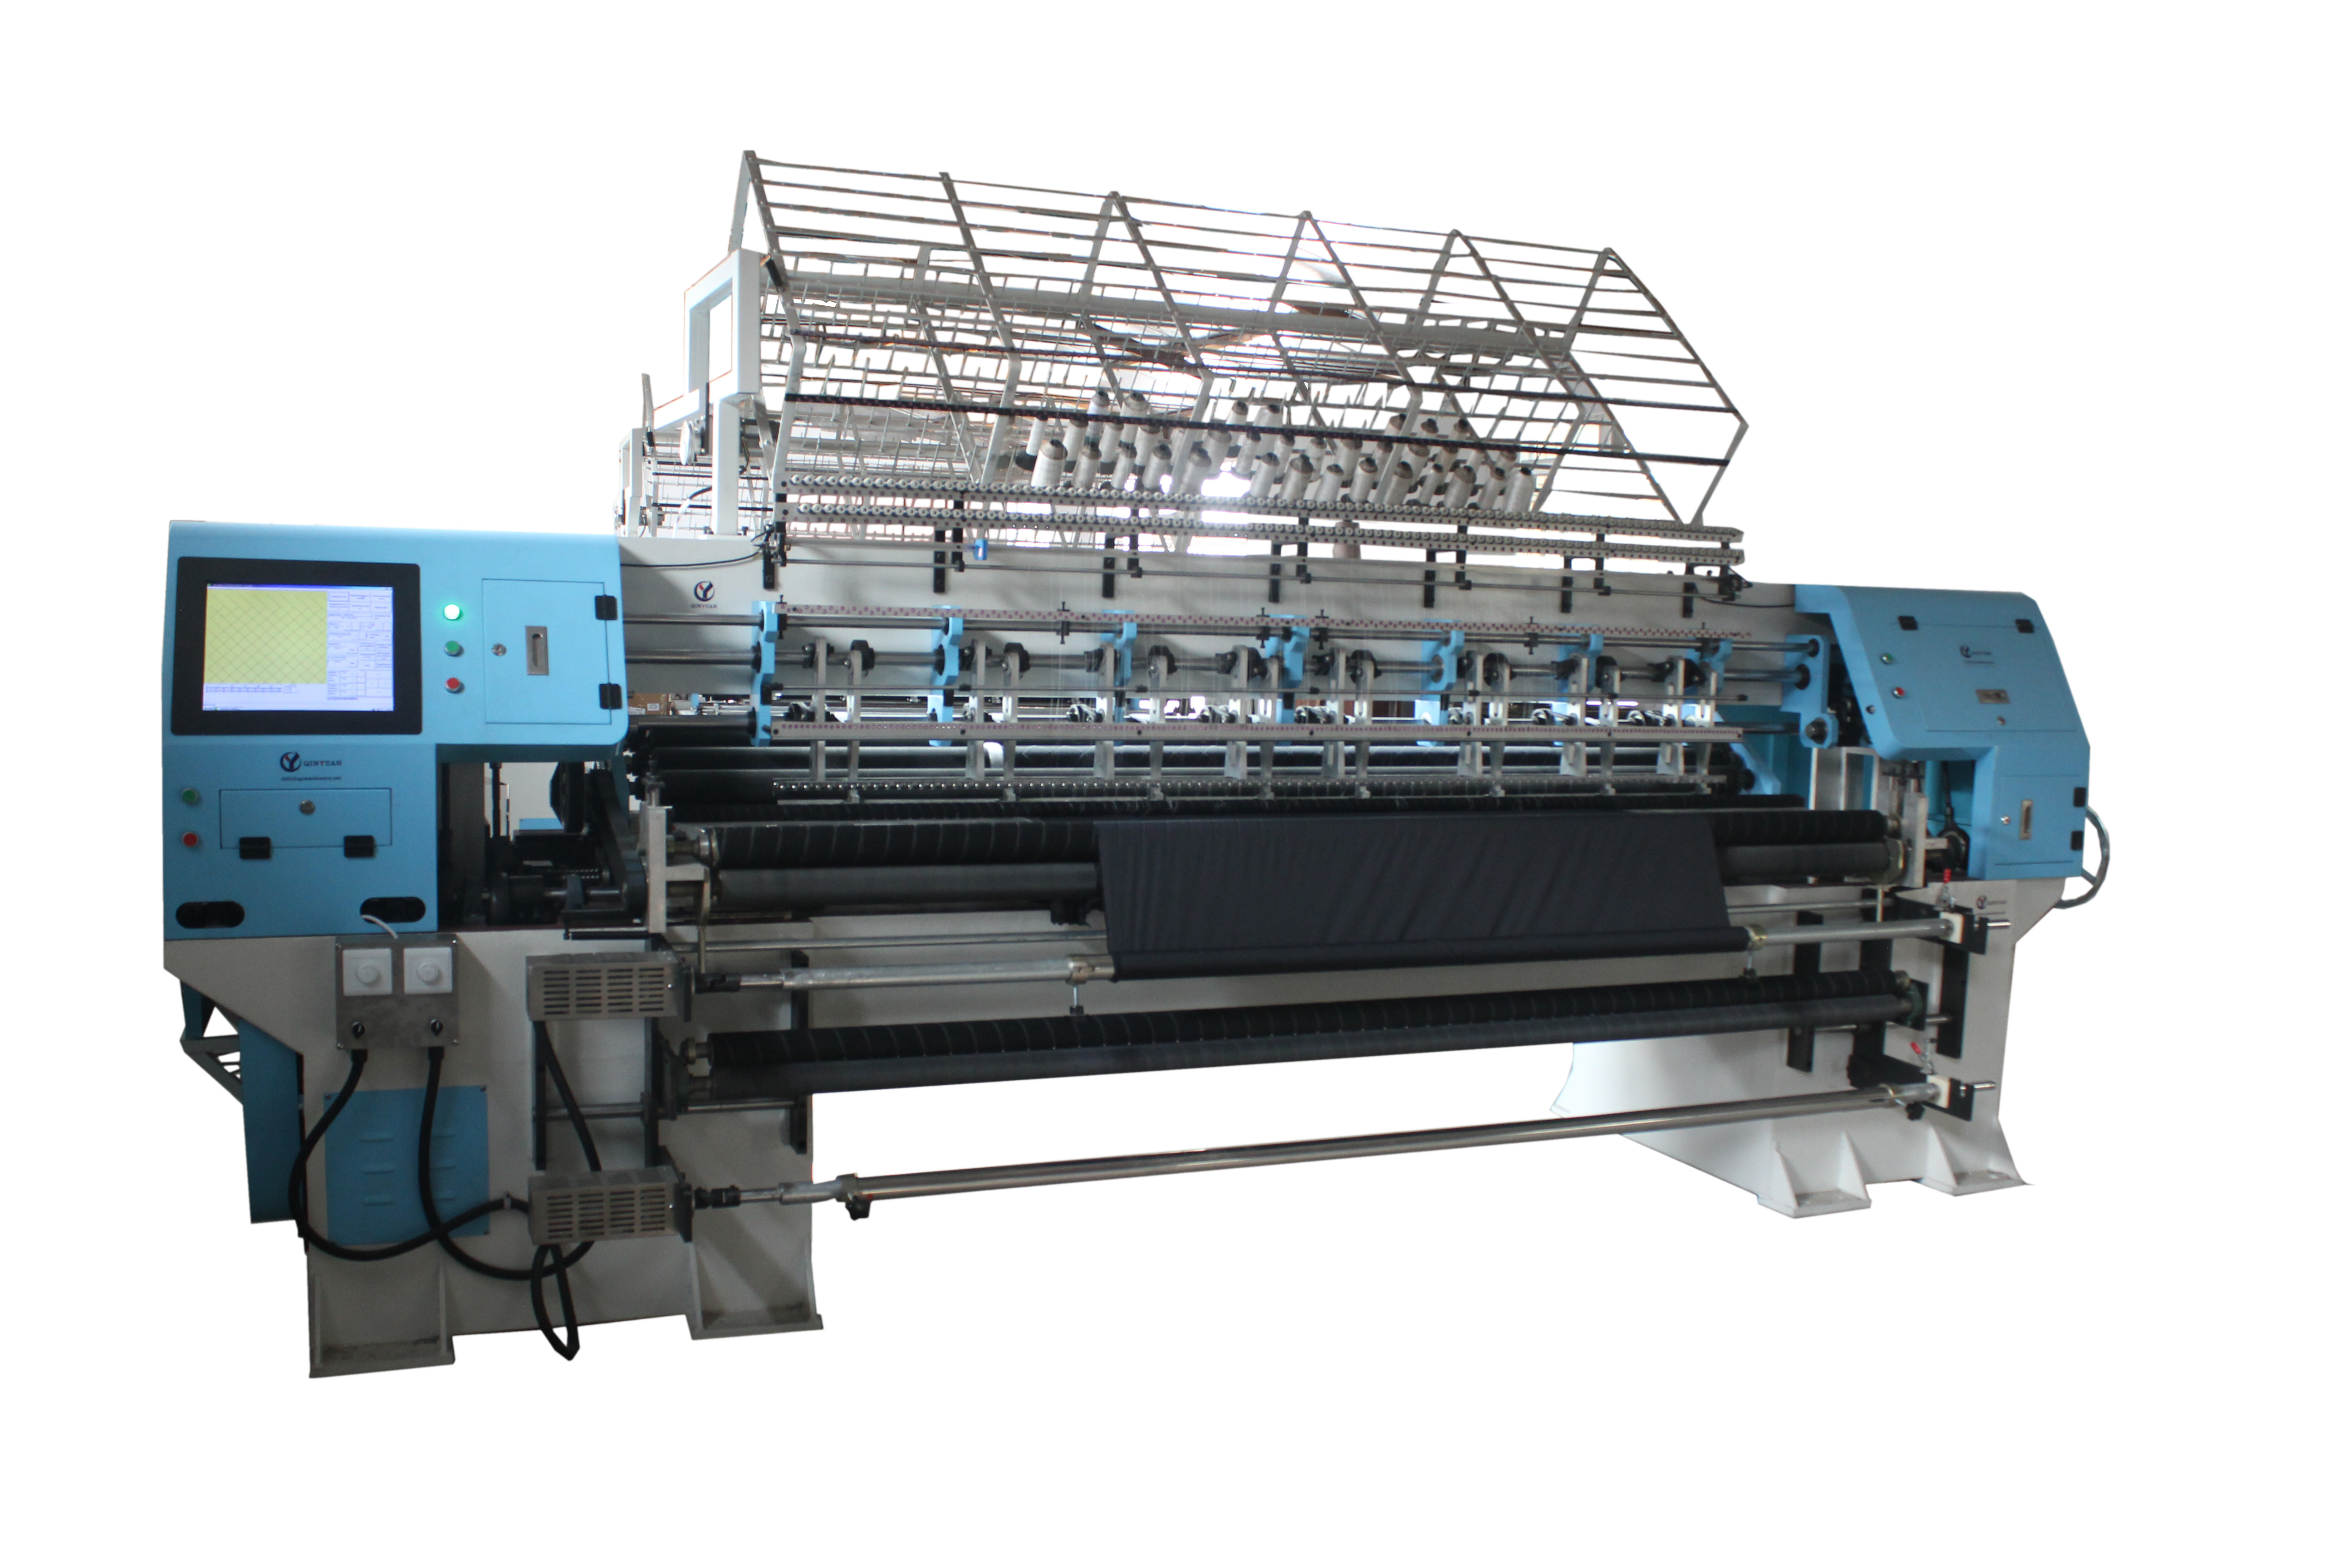 machine quilting for beginner, qinyuan patchwork sewing and quilting machine